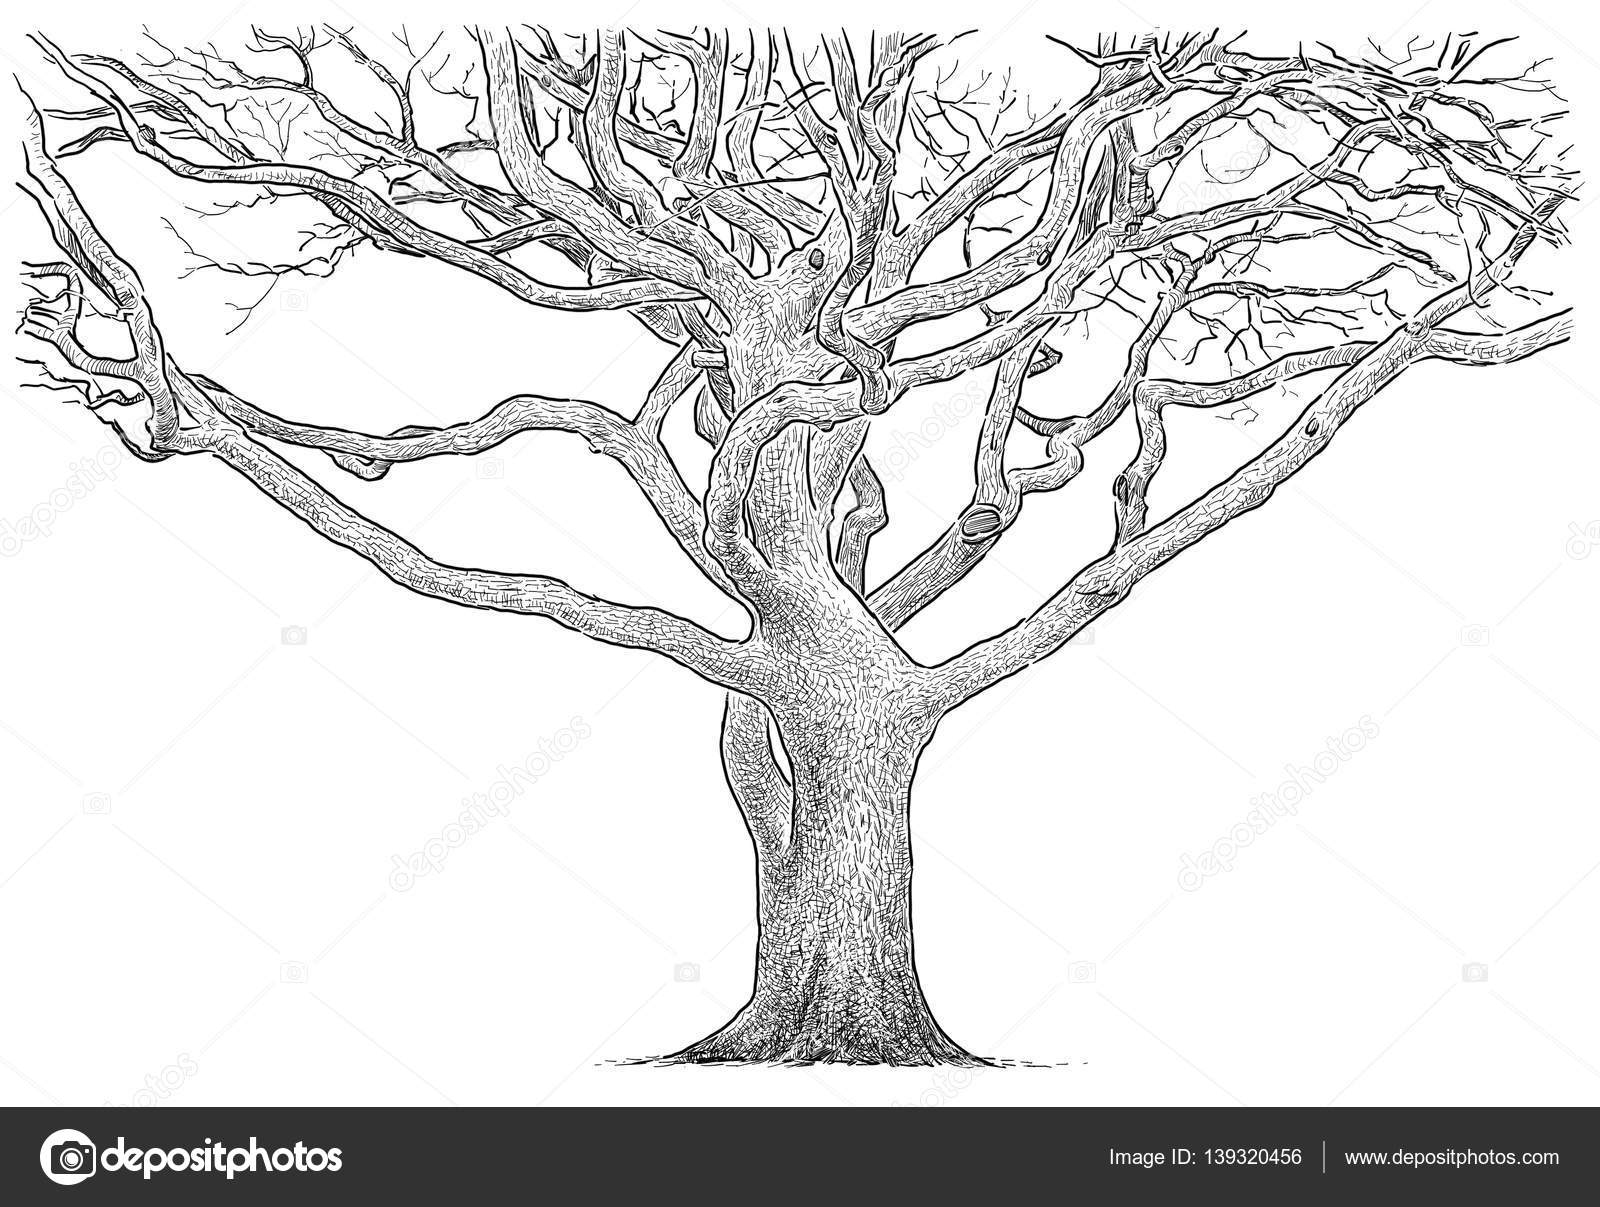 Sketch Of The Branches Of An Old Tree Stock Photo Image By C Mubaister Gmail Com 139320456